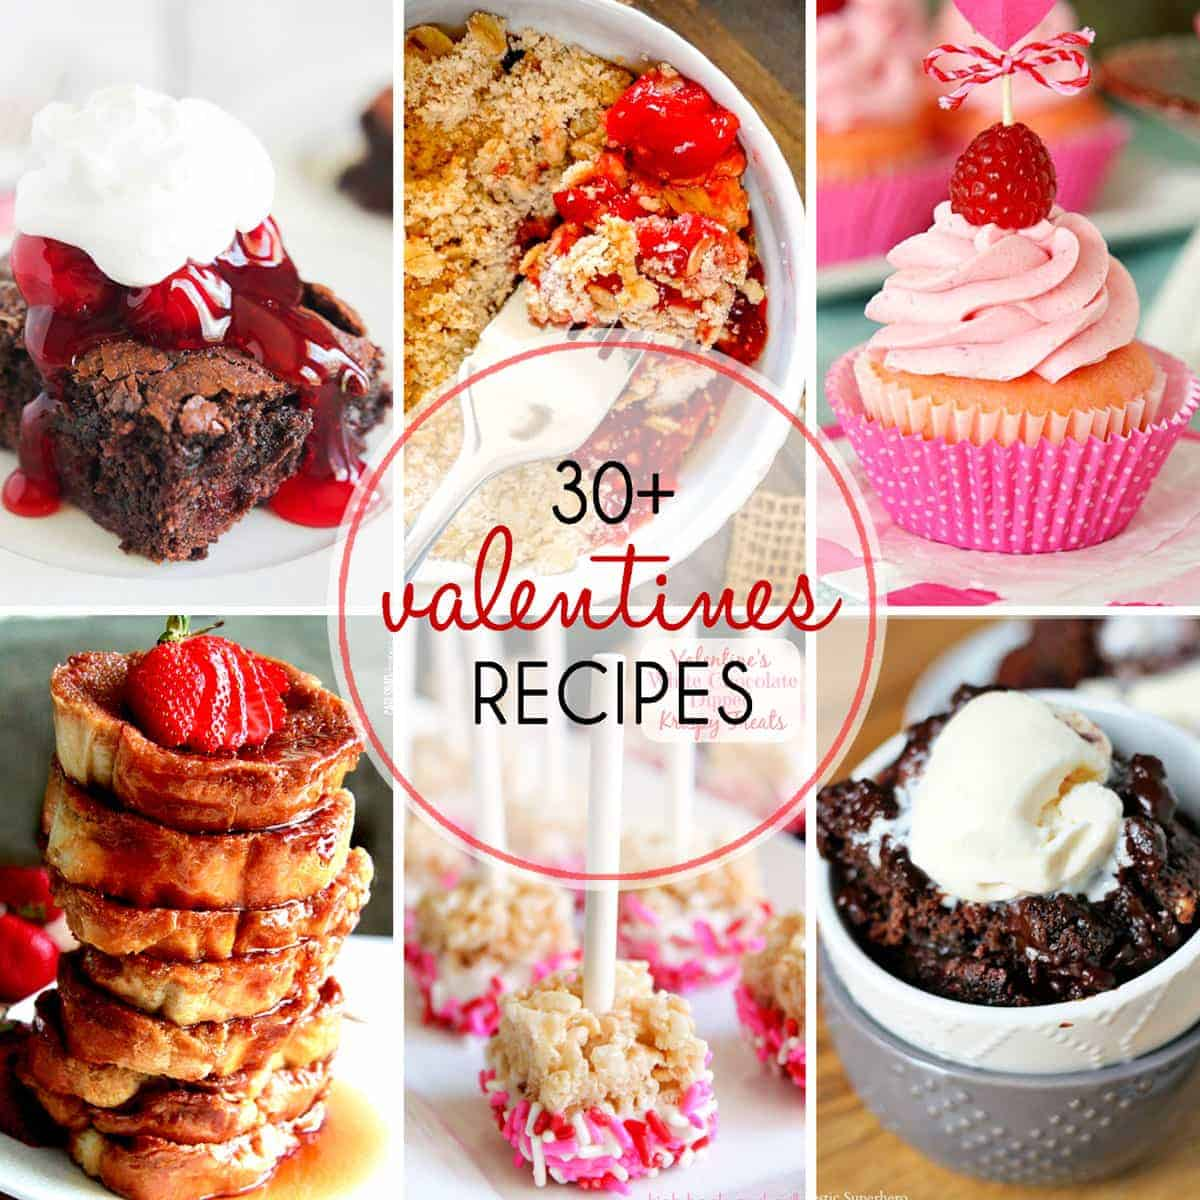 Valentine S Day Cake Recipes Pictures : 30+ Valentine s Day Recipes: easy sweet treats!